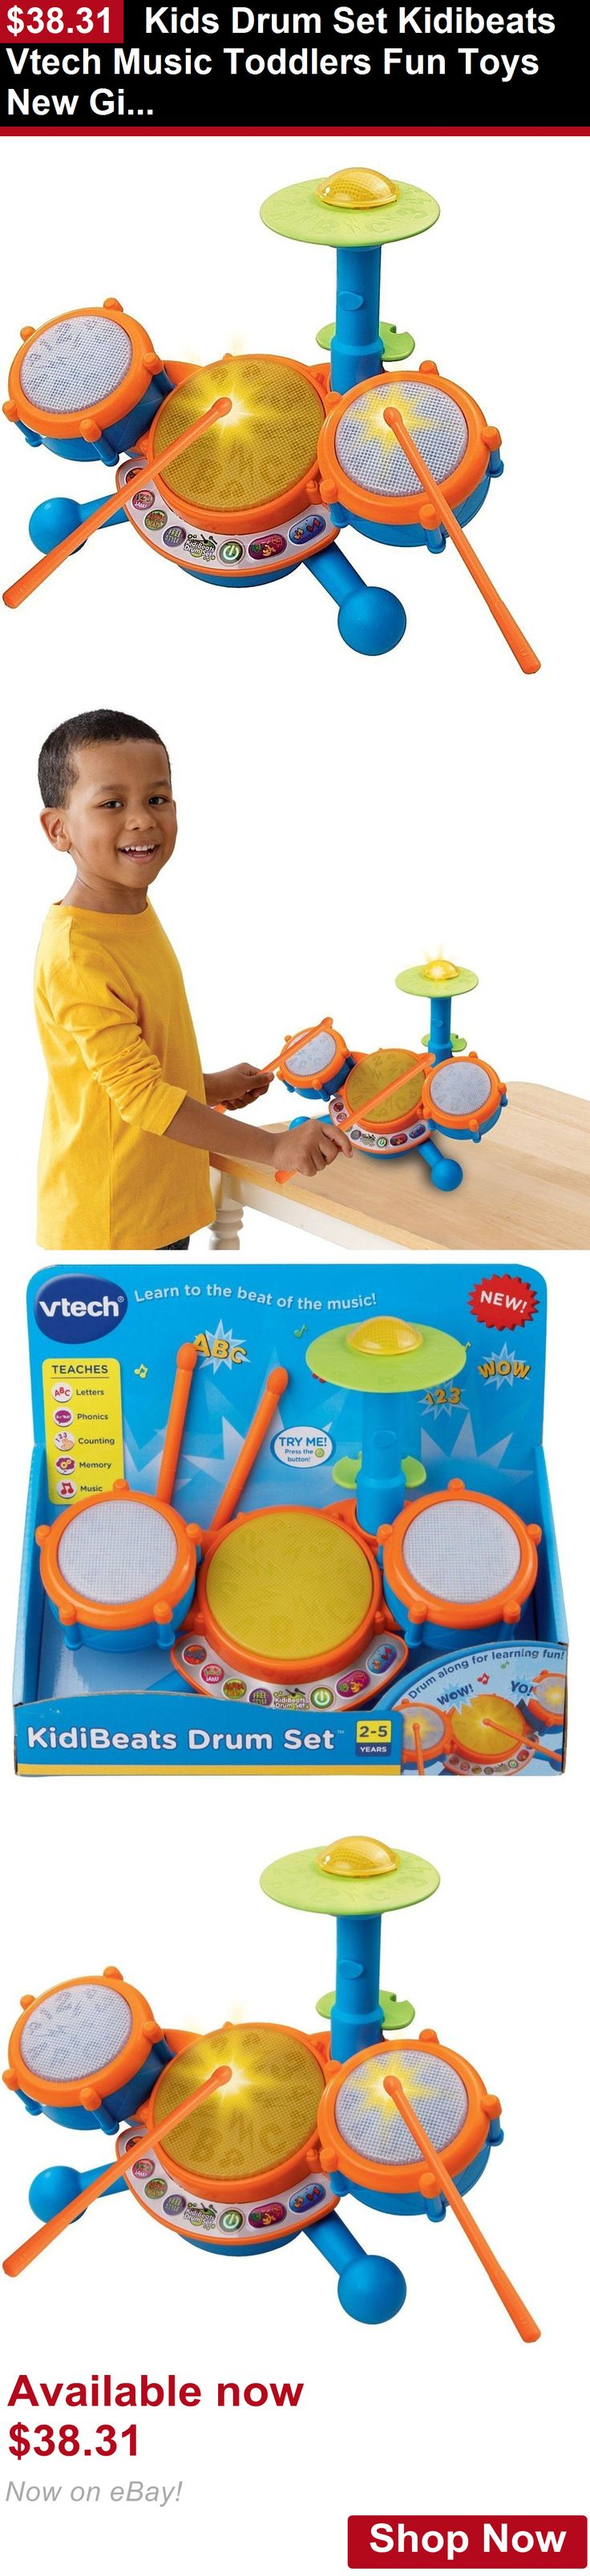 Developmental Baby Toys Kids Drum Set Kidibeats Vtech Music